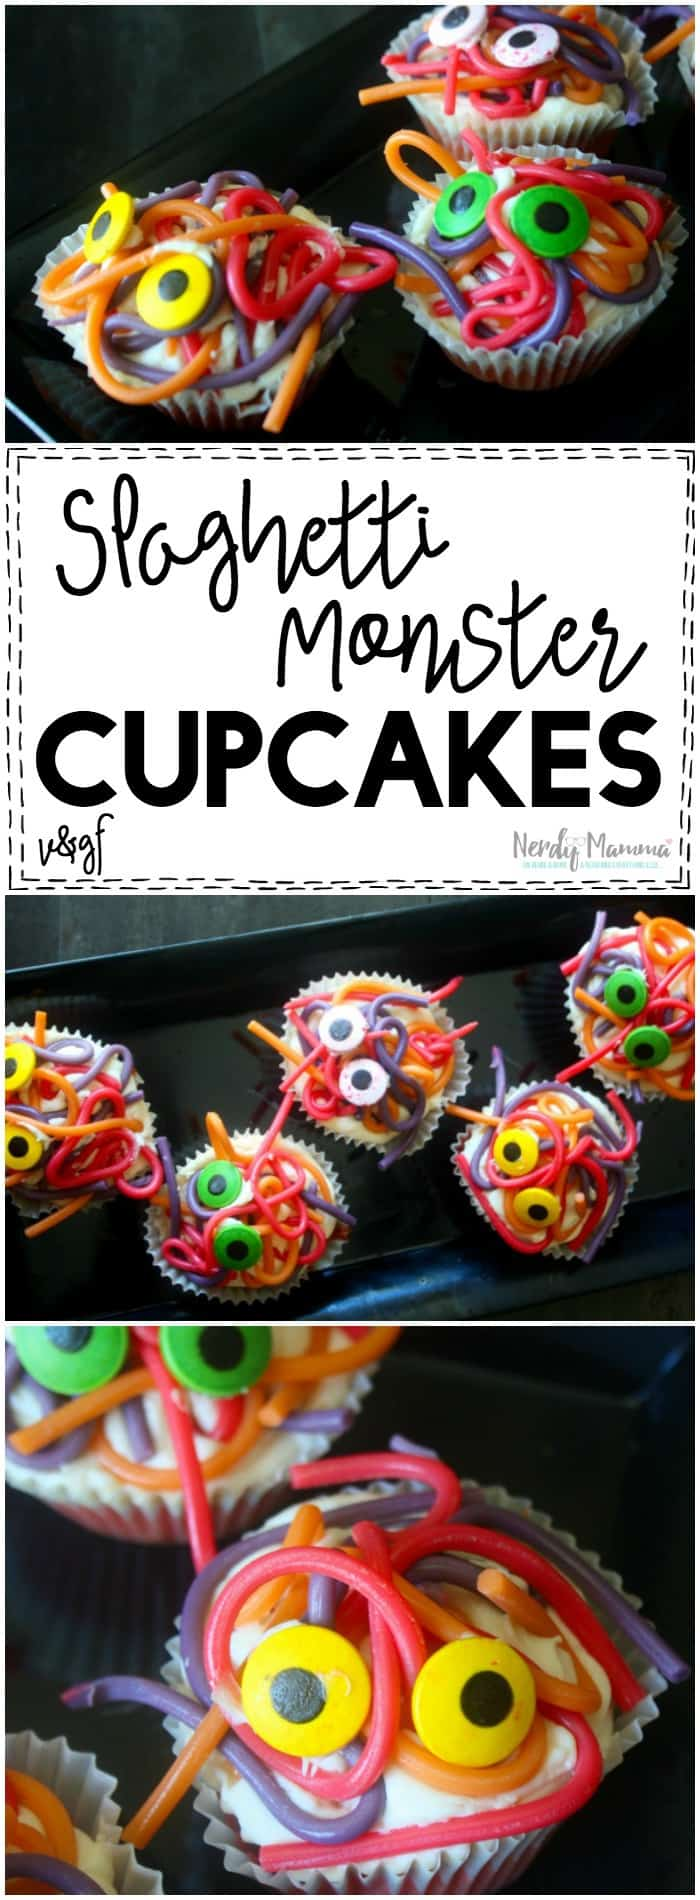 I love this easy recipe for the Spaghetti Monster Cupcakes! SO SIMPLE. And it's vegan and gluten-free...couldn't be better! LOL!